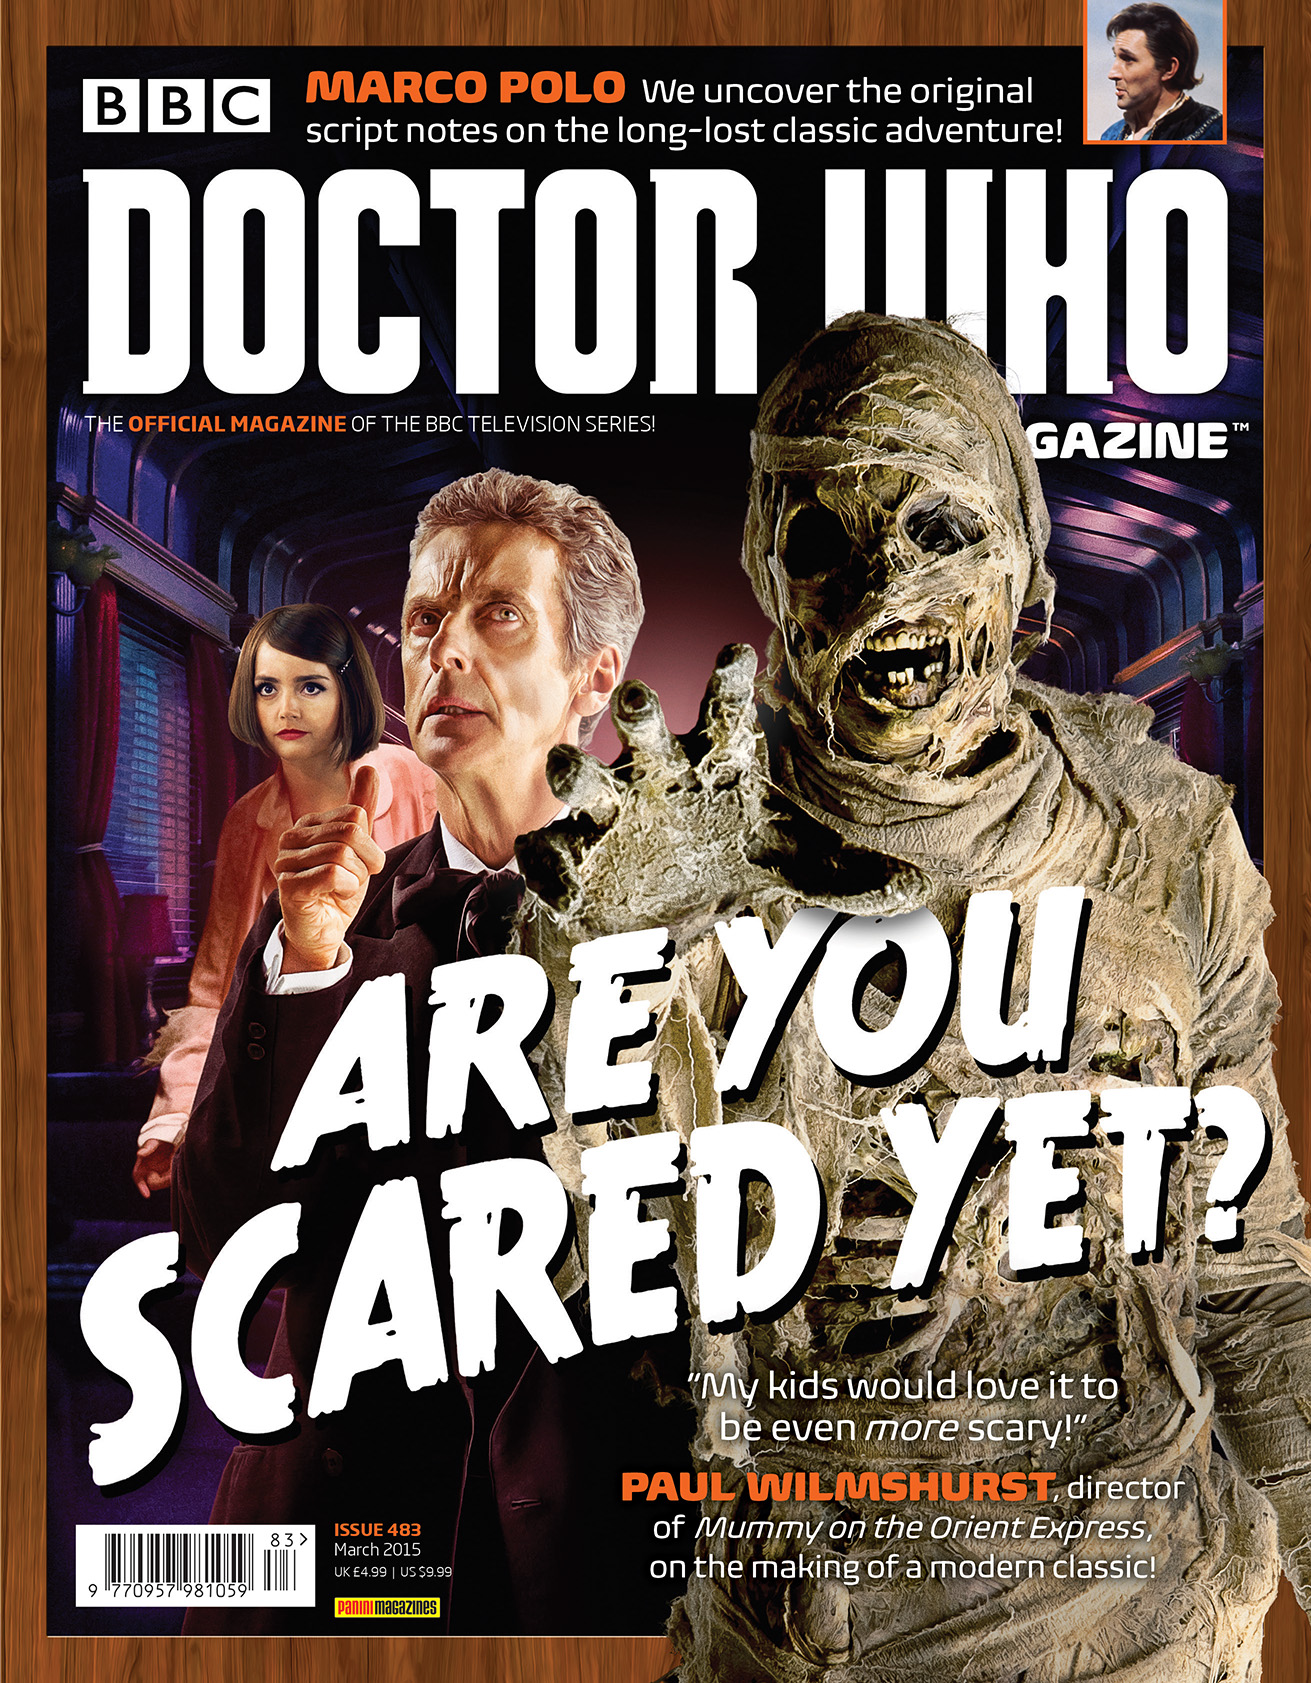 Doctor Who Magazine 483 (Credit: DWM)